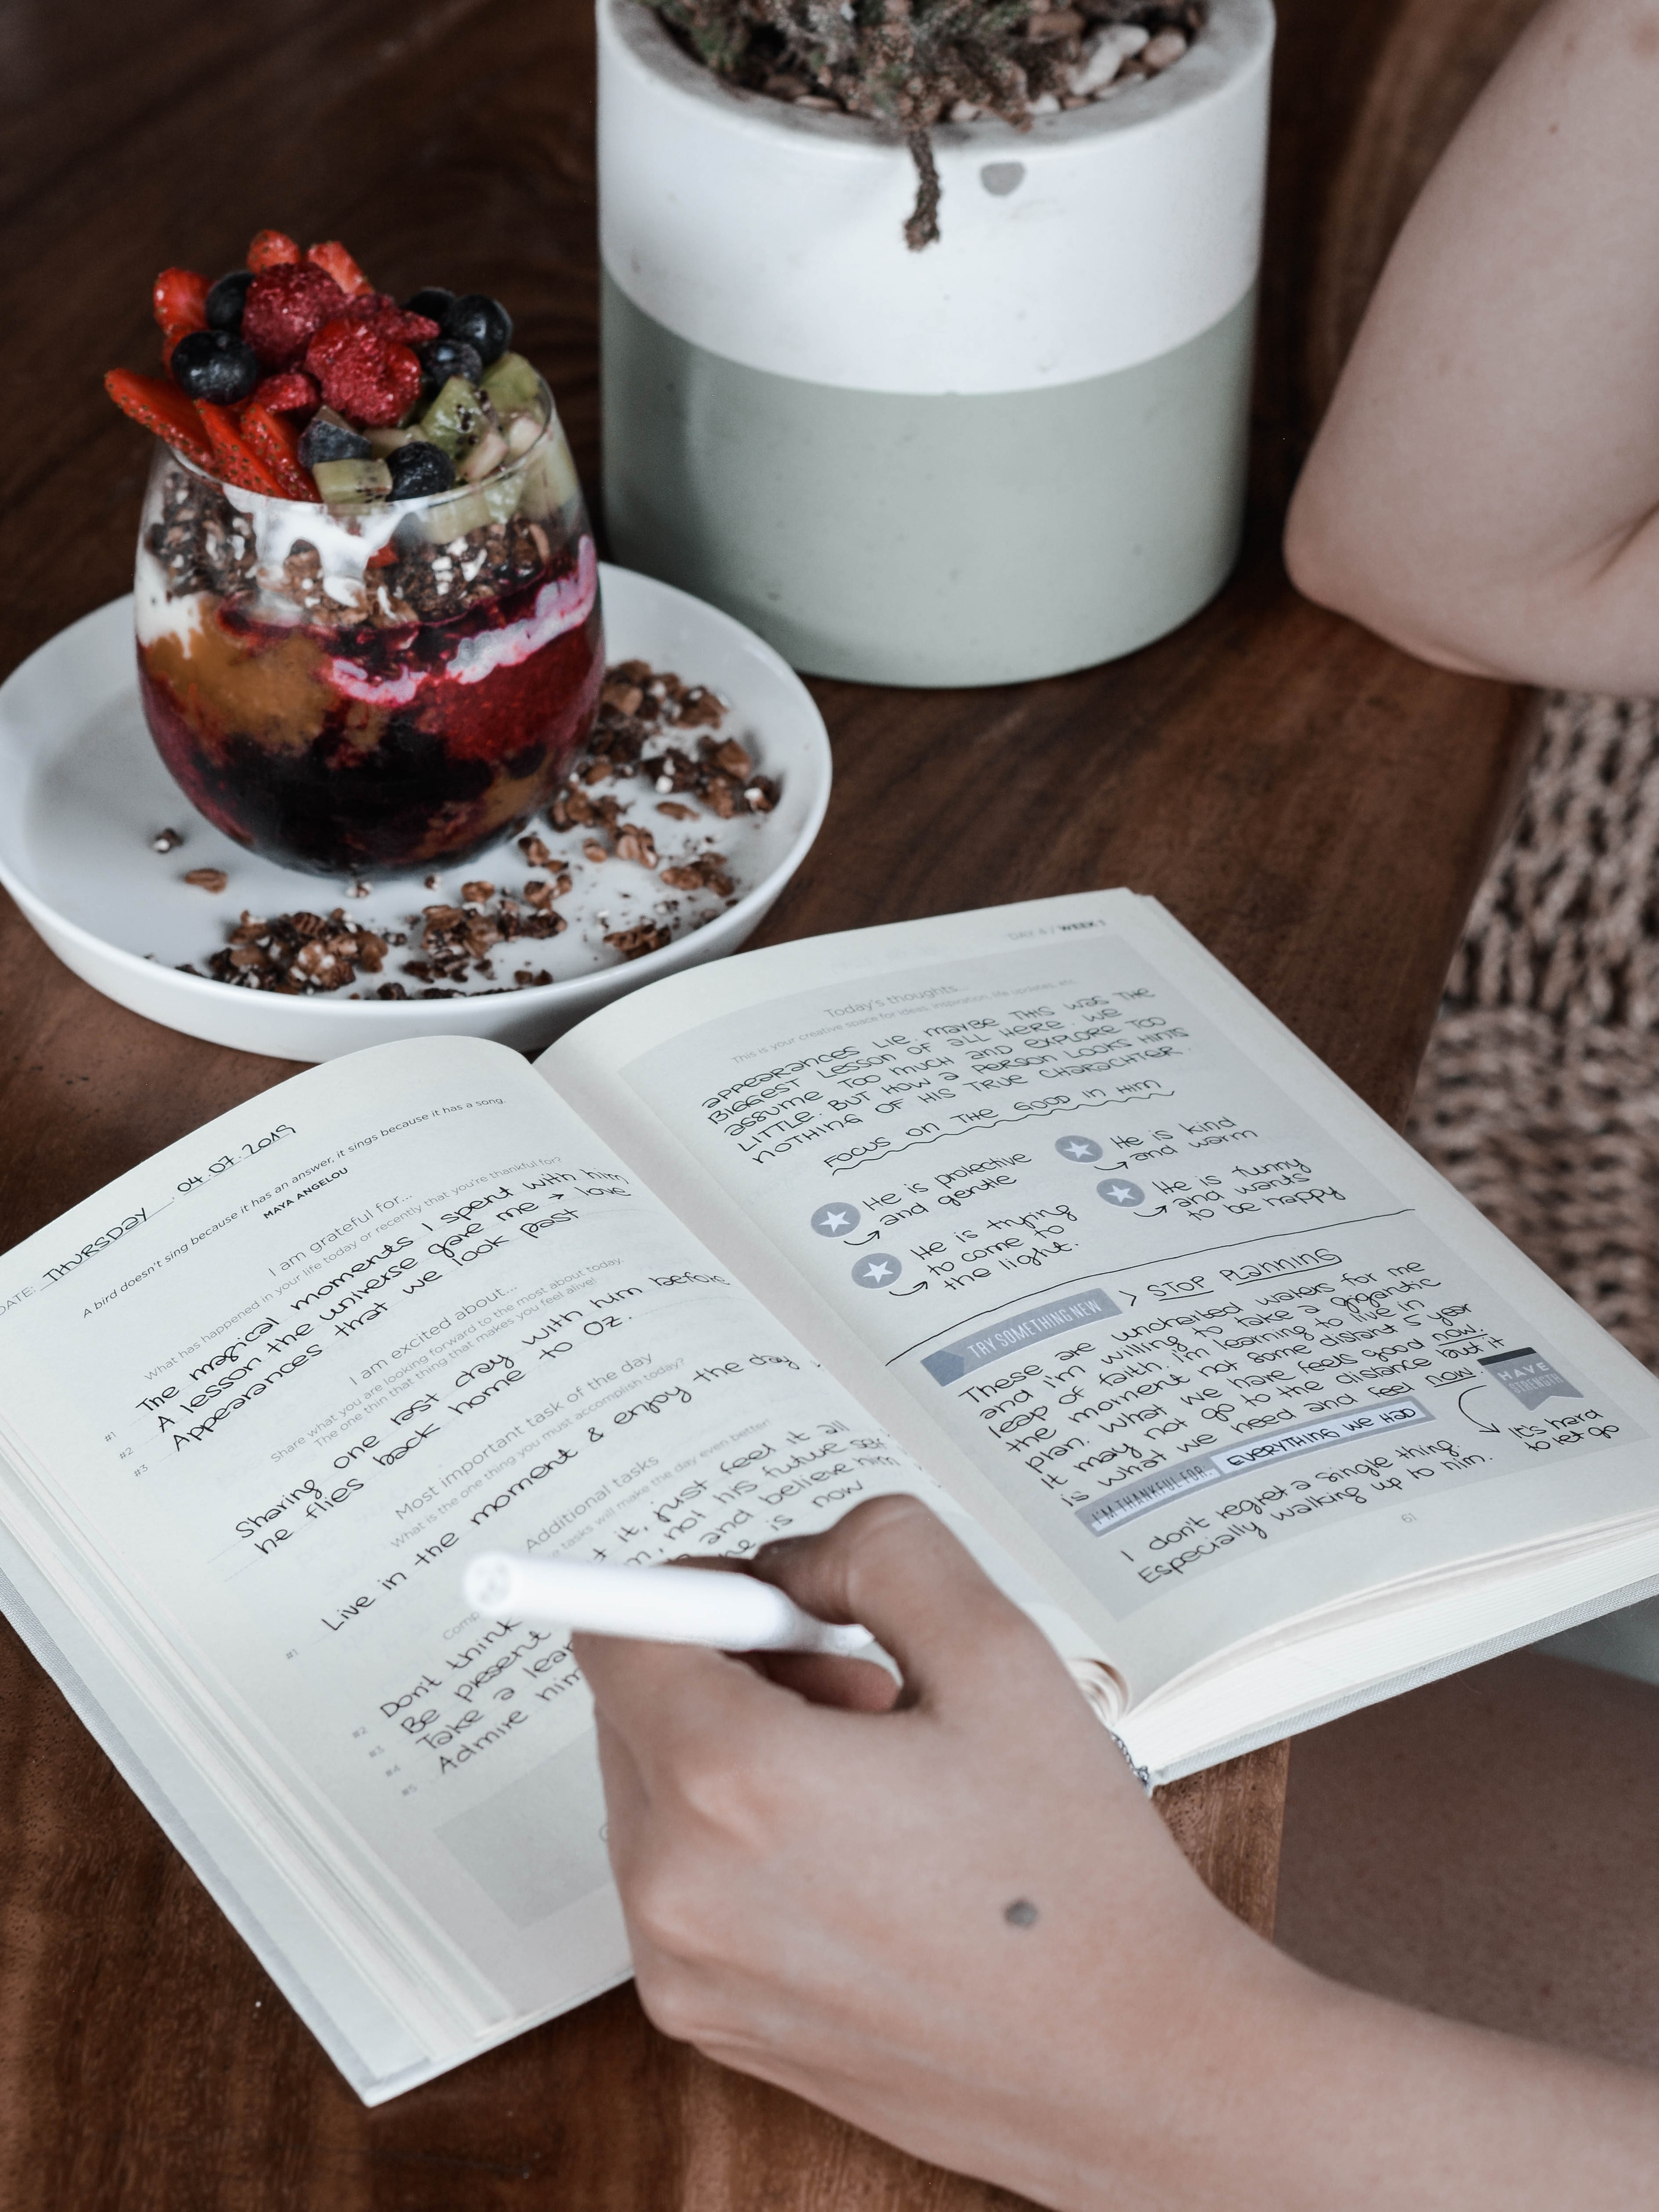 A gratitude journal open with a person holding a white pen writing on the page, the book already has writing in. Next to the book is a dessert with fruit in a small glass and a faux plant next the glass.